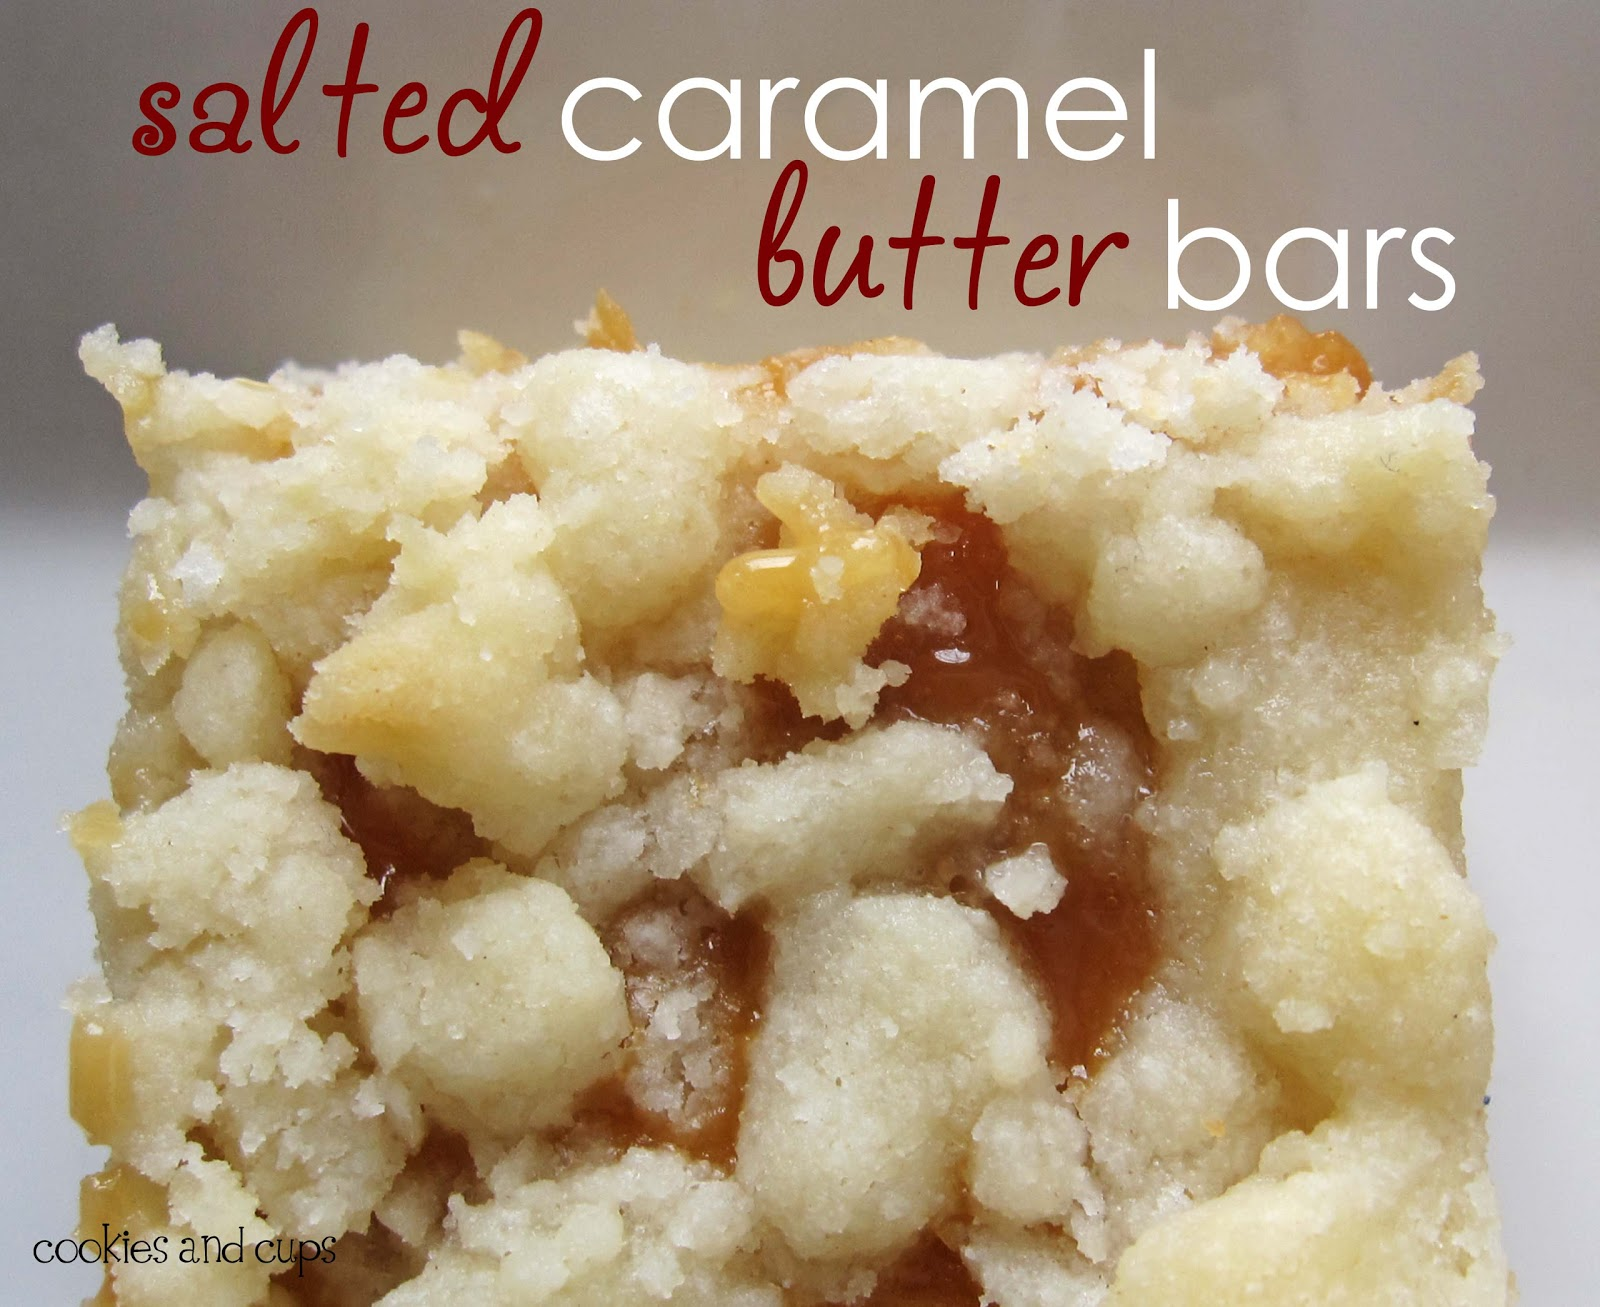 Salted Caramel Butter Bars: Good Family Reunion Prep ...